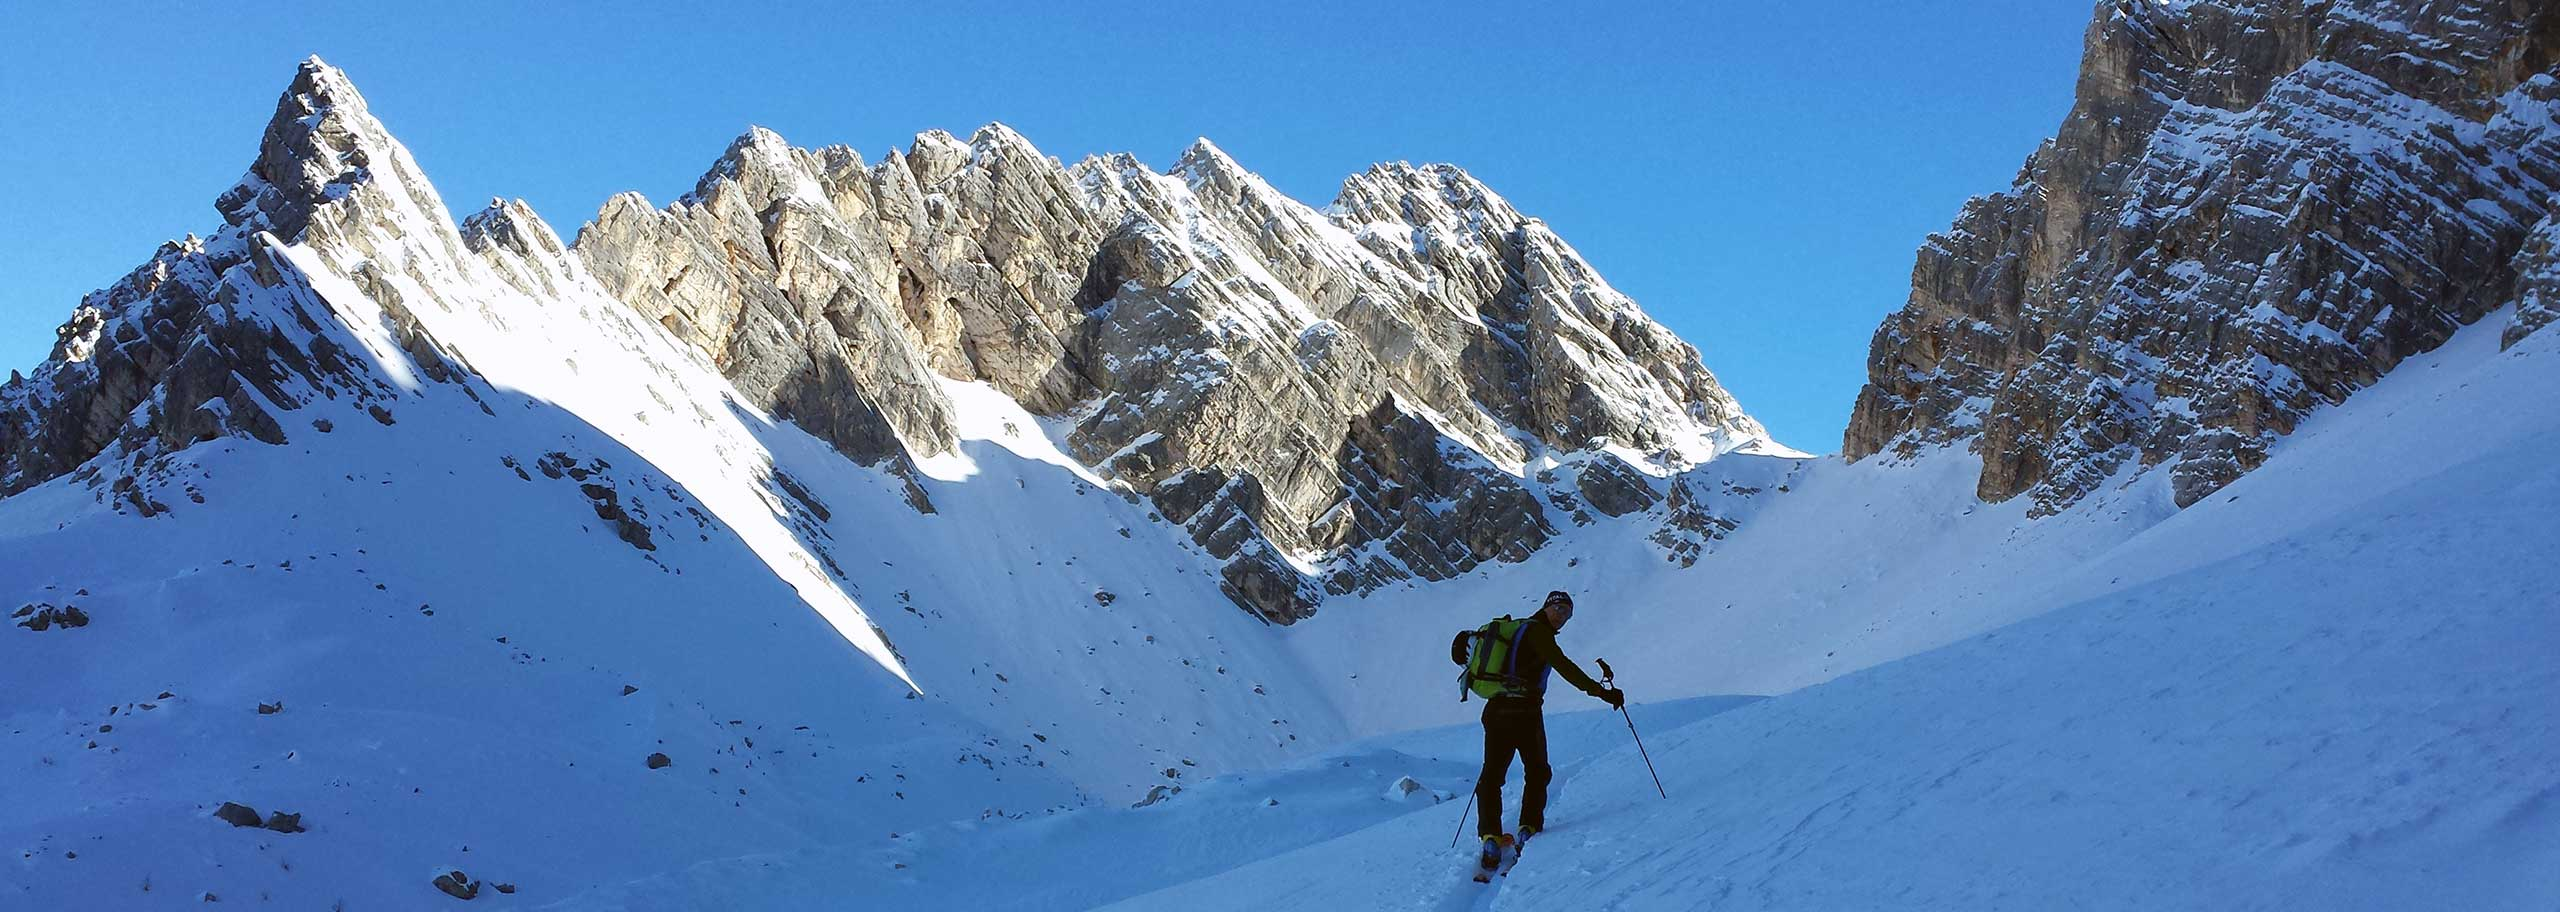 Ski Mountaineering with a Mountain Guide in Val di Zoldo